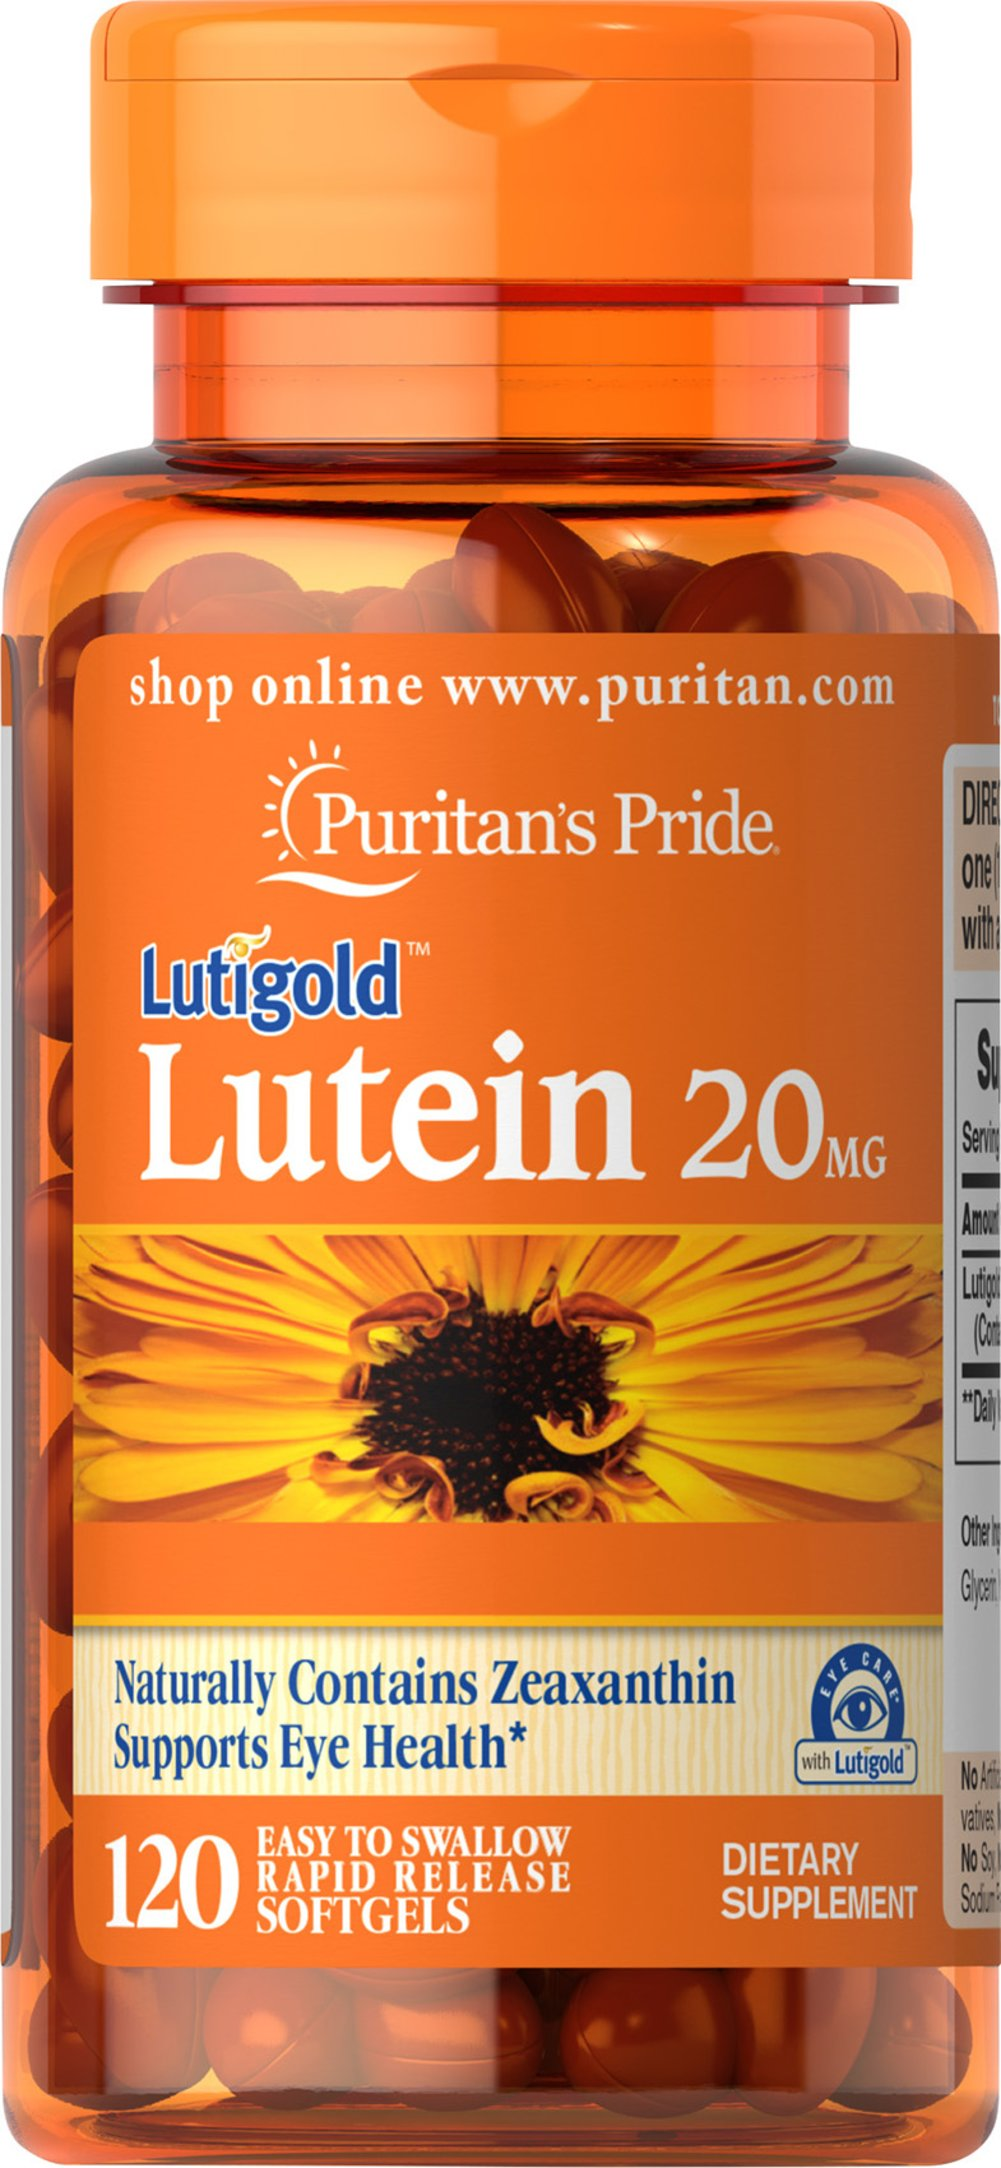 Lutein 20 mg <p>Like other parts of the body, the eyes can be affected by the stresses of time.  Lutein helps to improve vision in low contrast situations, which is essential for night driving.**  Lutein Lutigold™ plays a role in the maintenance of eye health and is the principle Carotenoid found in the central area of the retina called the macula.** Carotenoids are fat-soluble antioxidants found in fruits, vegetables, marigolds and other plants.**</p> 120 Softgels